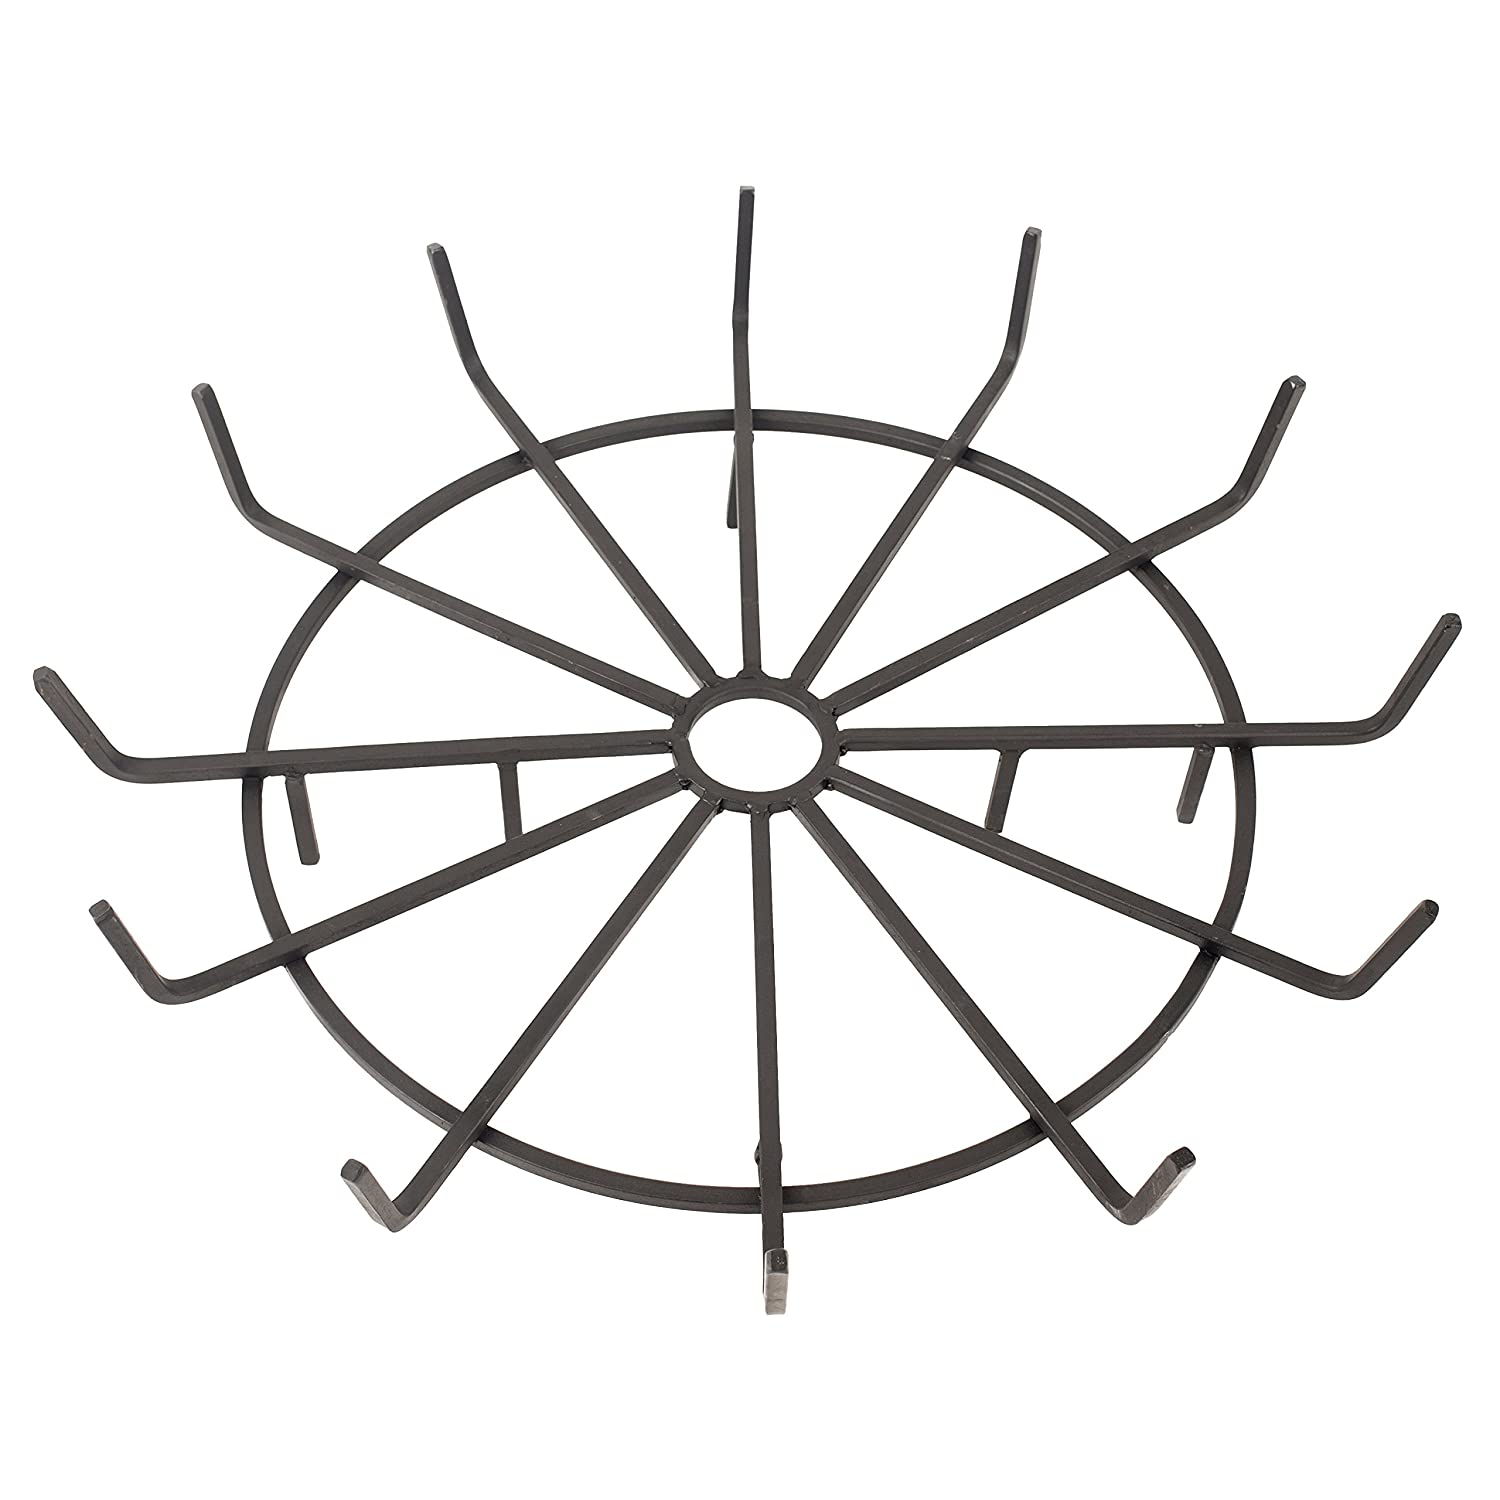 Pleasant Hearth OFP32WG 1 2 thick 32 Steel Fire Pit Grate